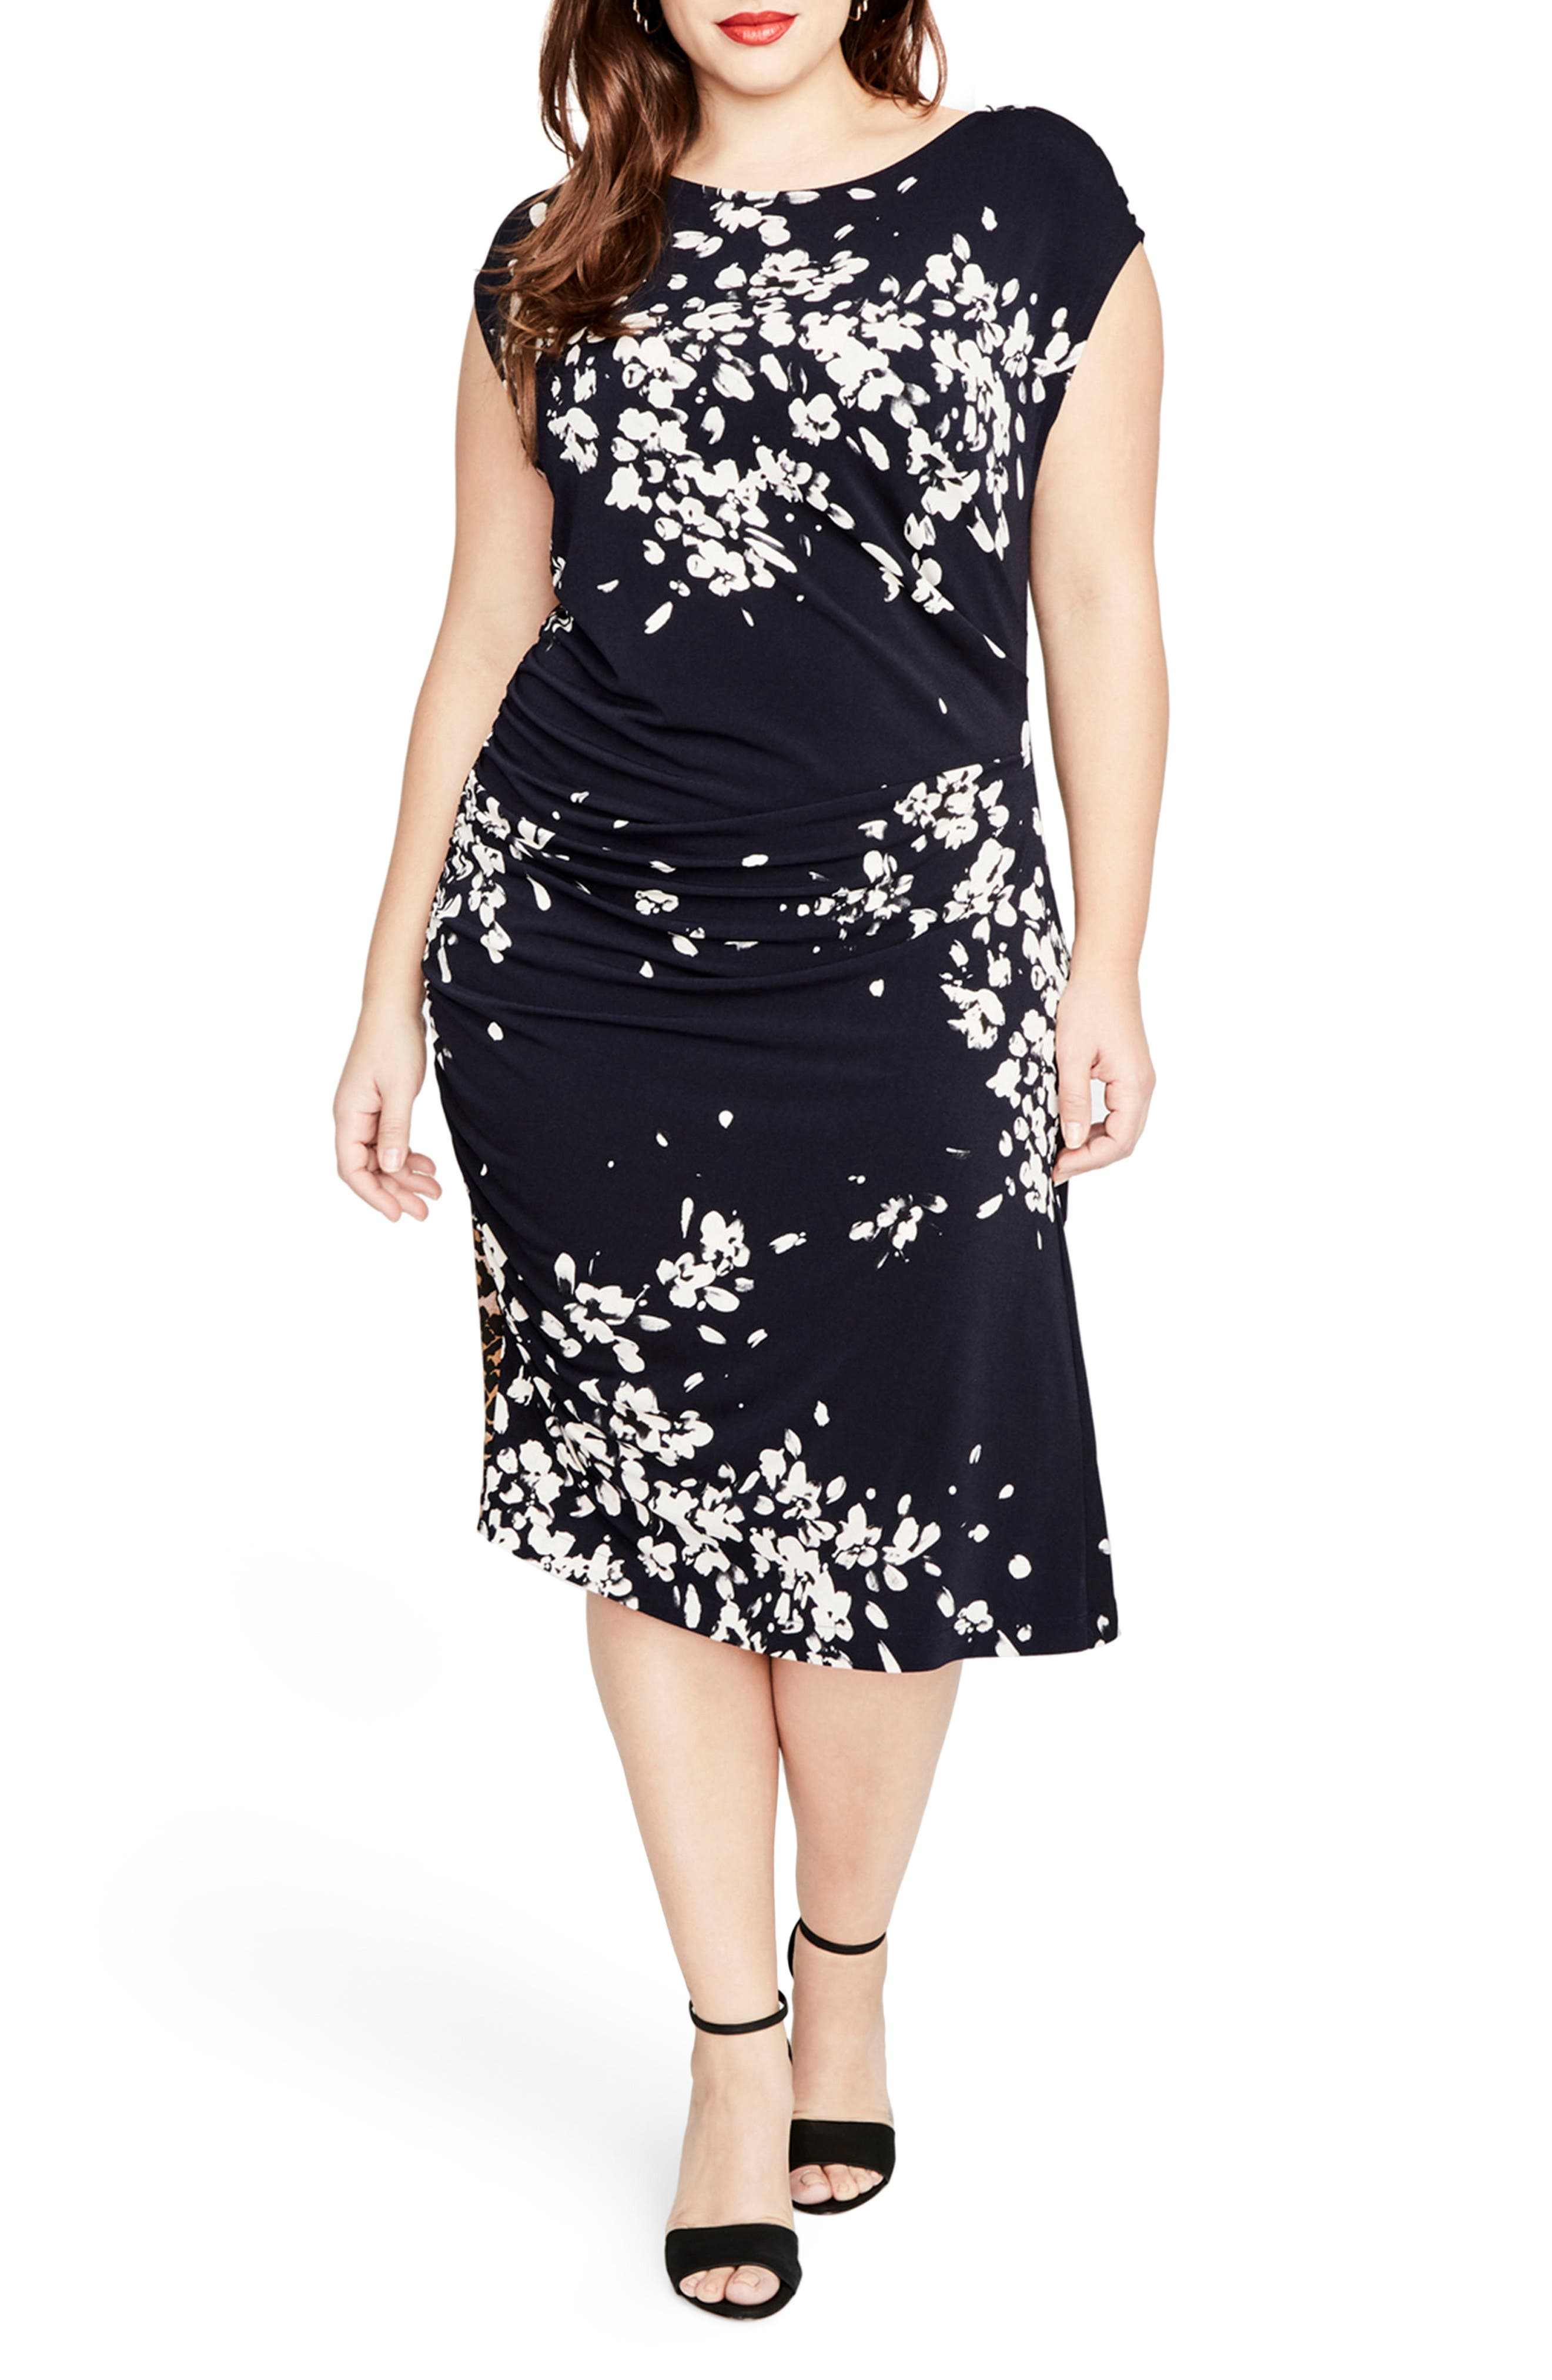 RACHEL RACHEL ROY,                             RACHEL BY Rachel Roy Asymmetrical Floral Dress,                             Main thumbnail 1, color,                             411